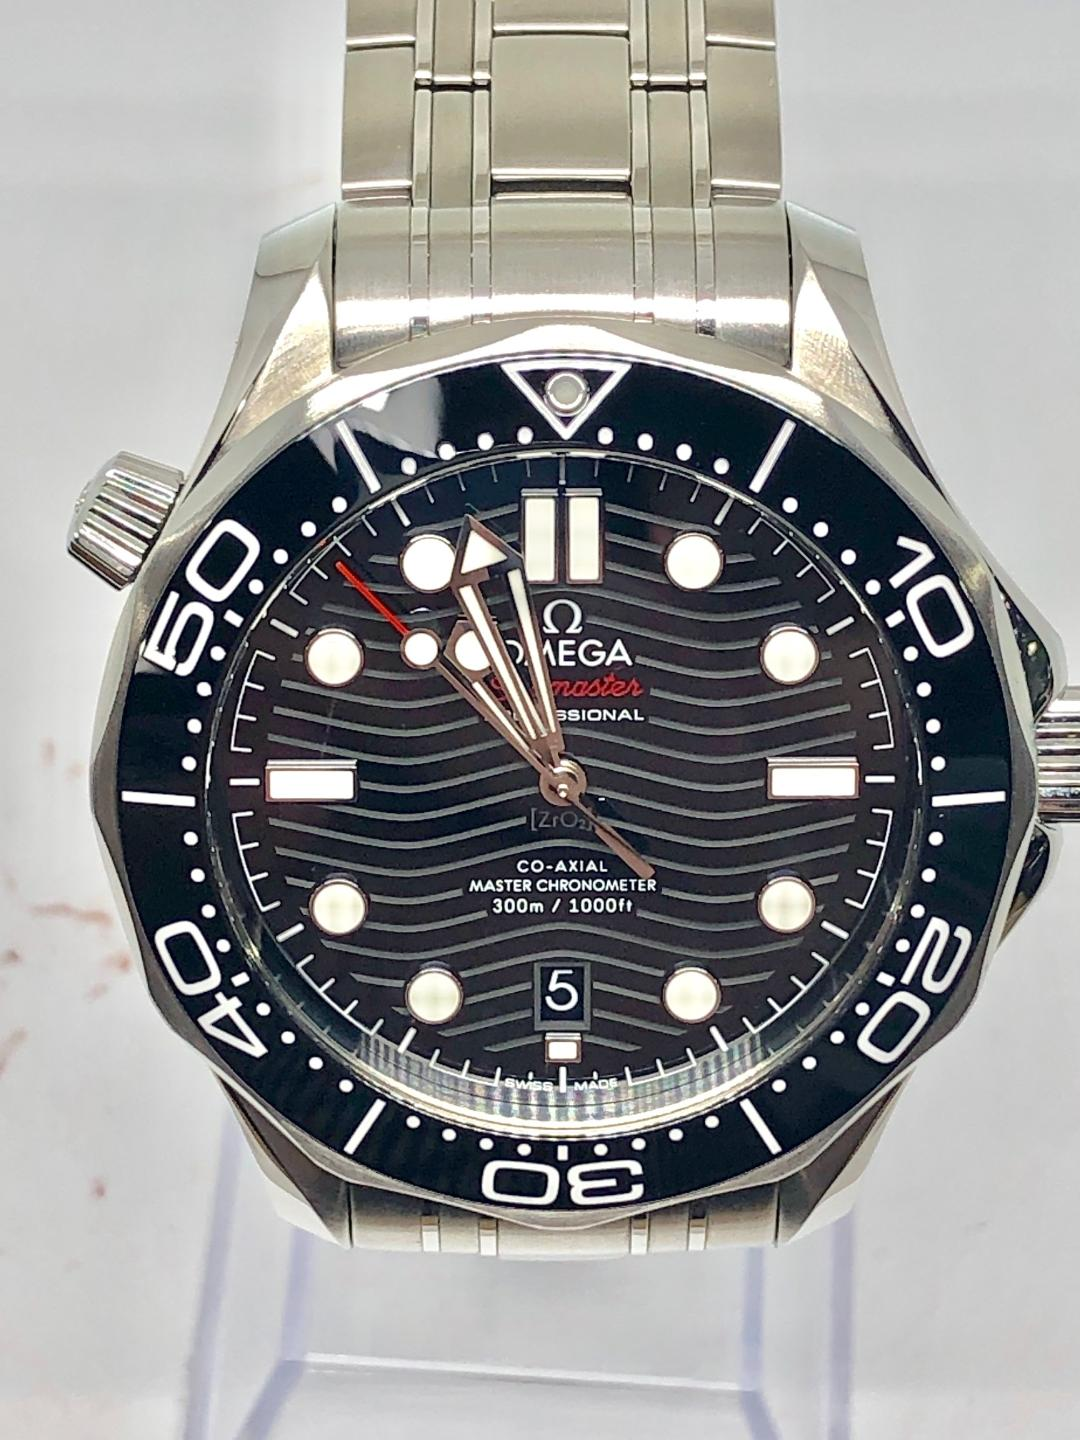 2019 Omega Seamaster Diver 300m Complete Box Amp Papers 5